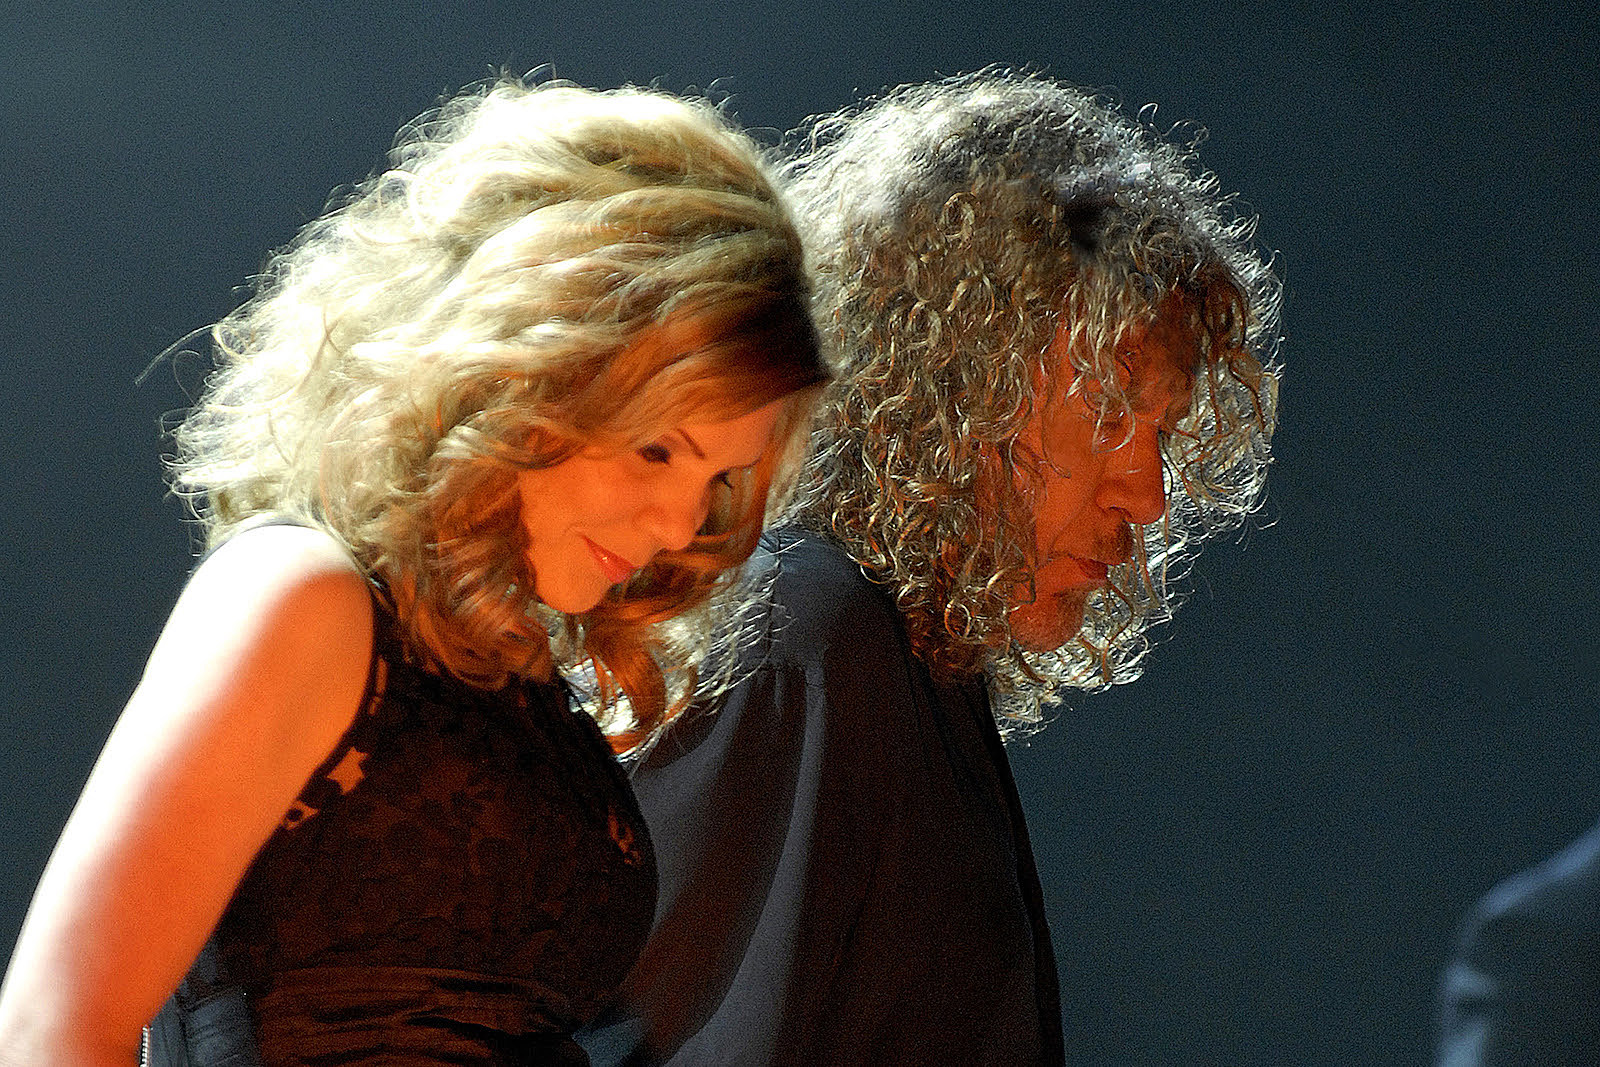 Listen to Robert Plant and Alison Krauss' New Song 'Can't Let Go'